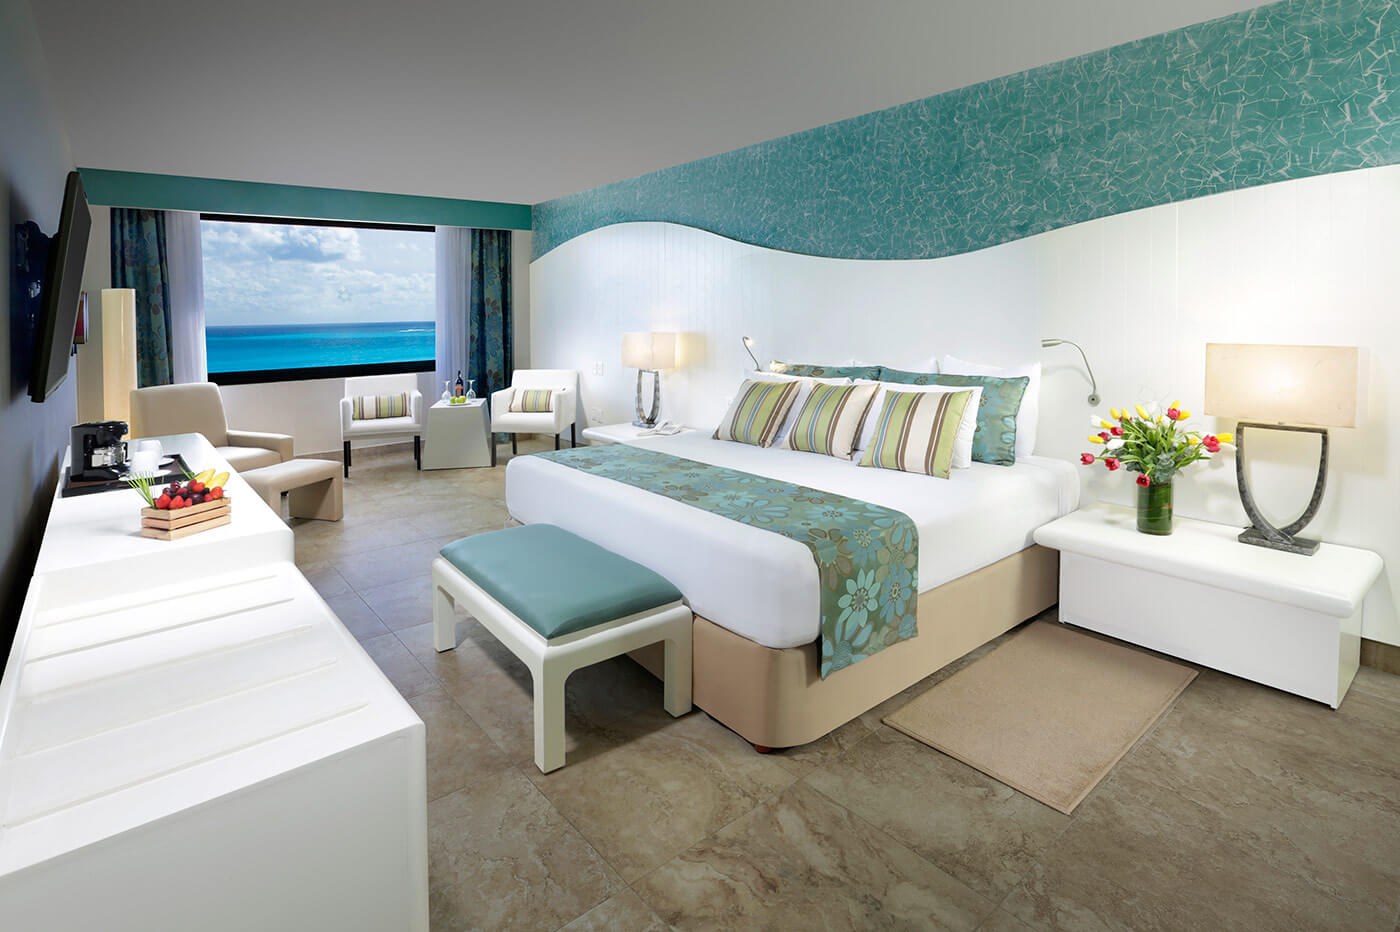 Sample image of Grand Ocean room